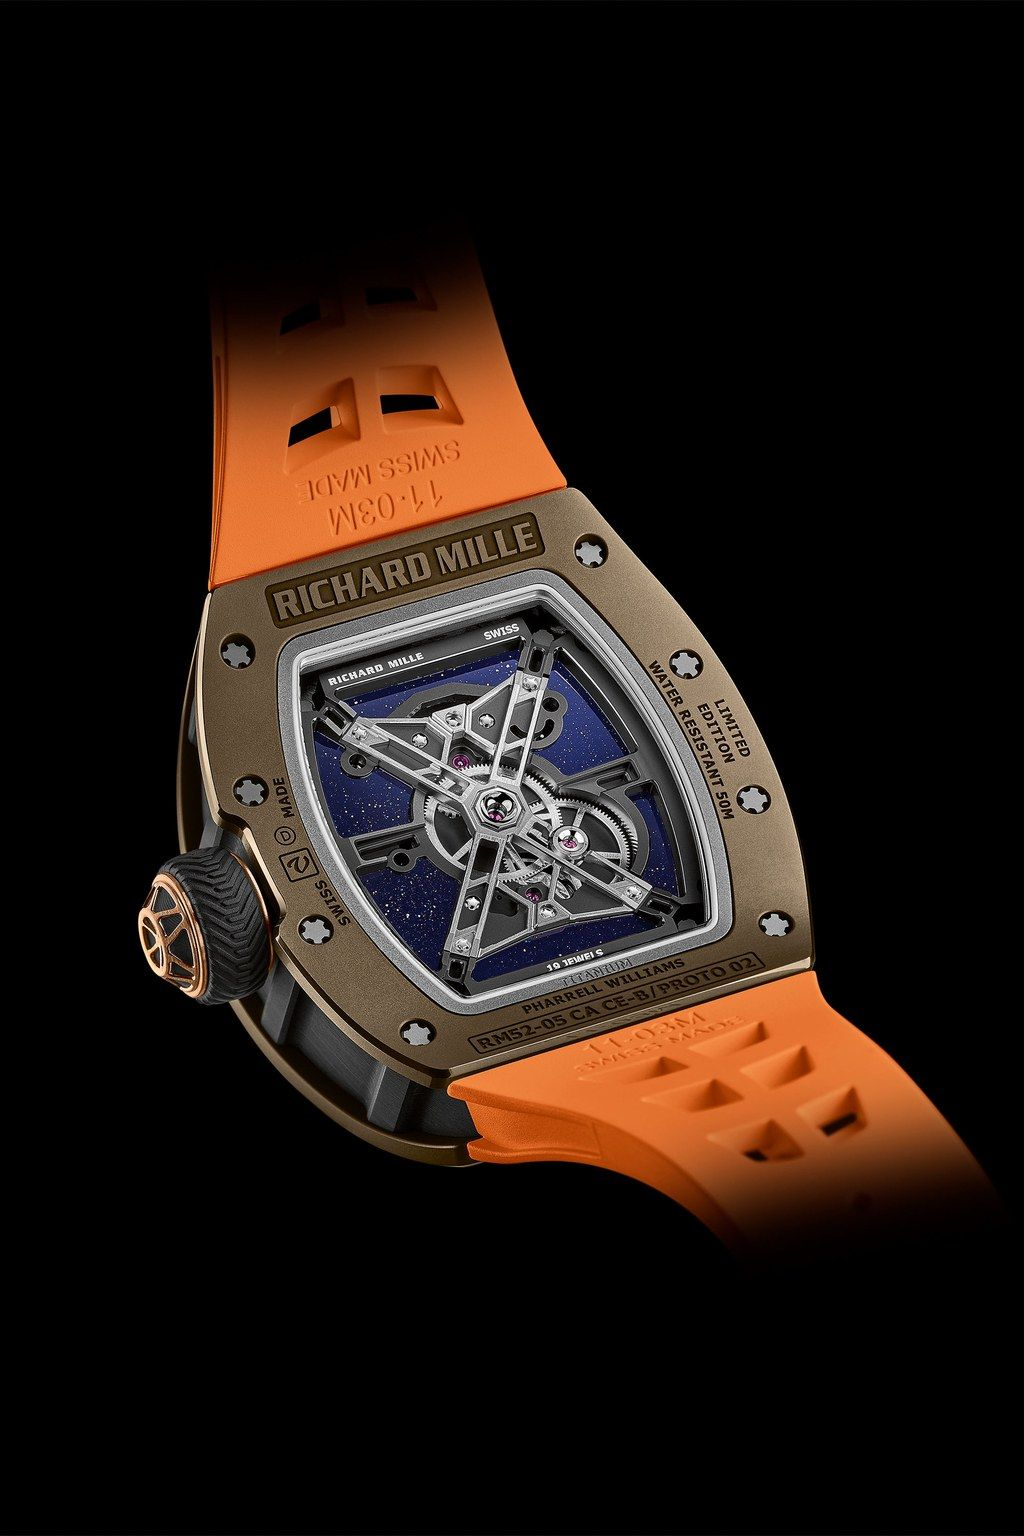 Pharrell And Richard Mille Collaborate On An Out Of This World Watch Richard Mille Watches Richard Mille Pharrell Williams